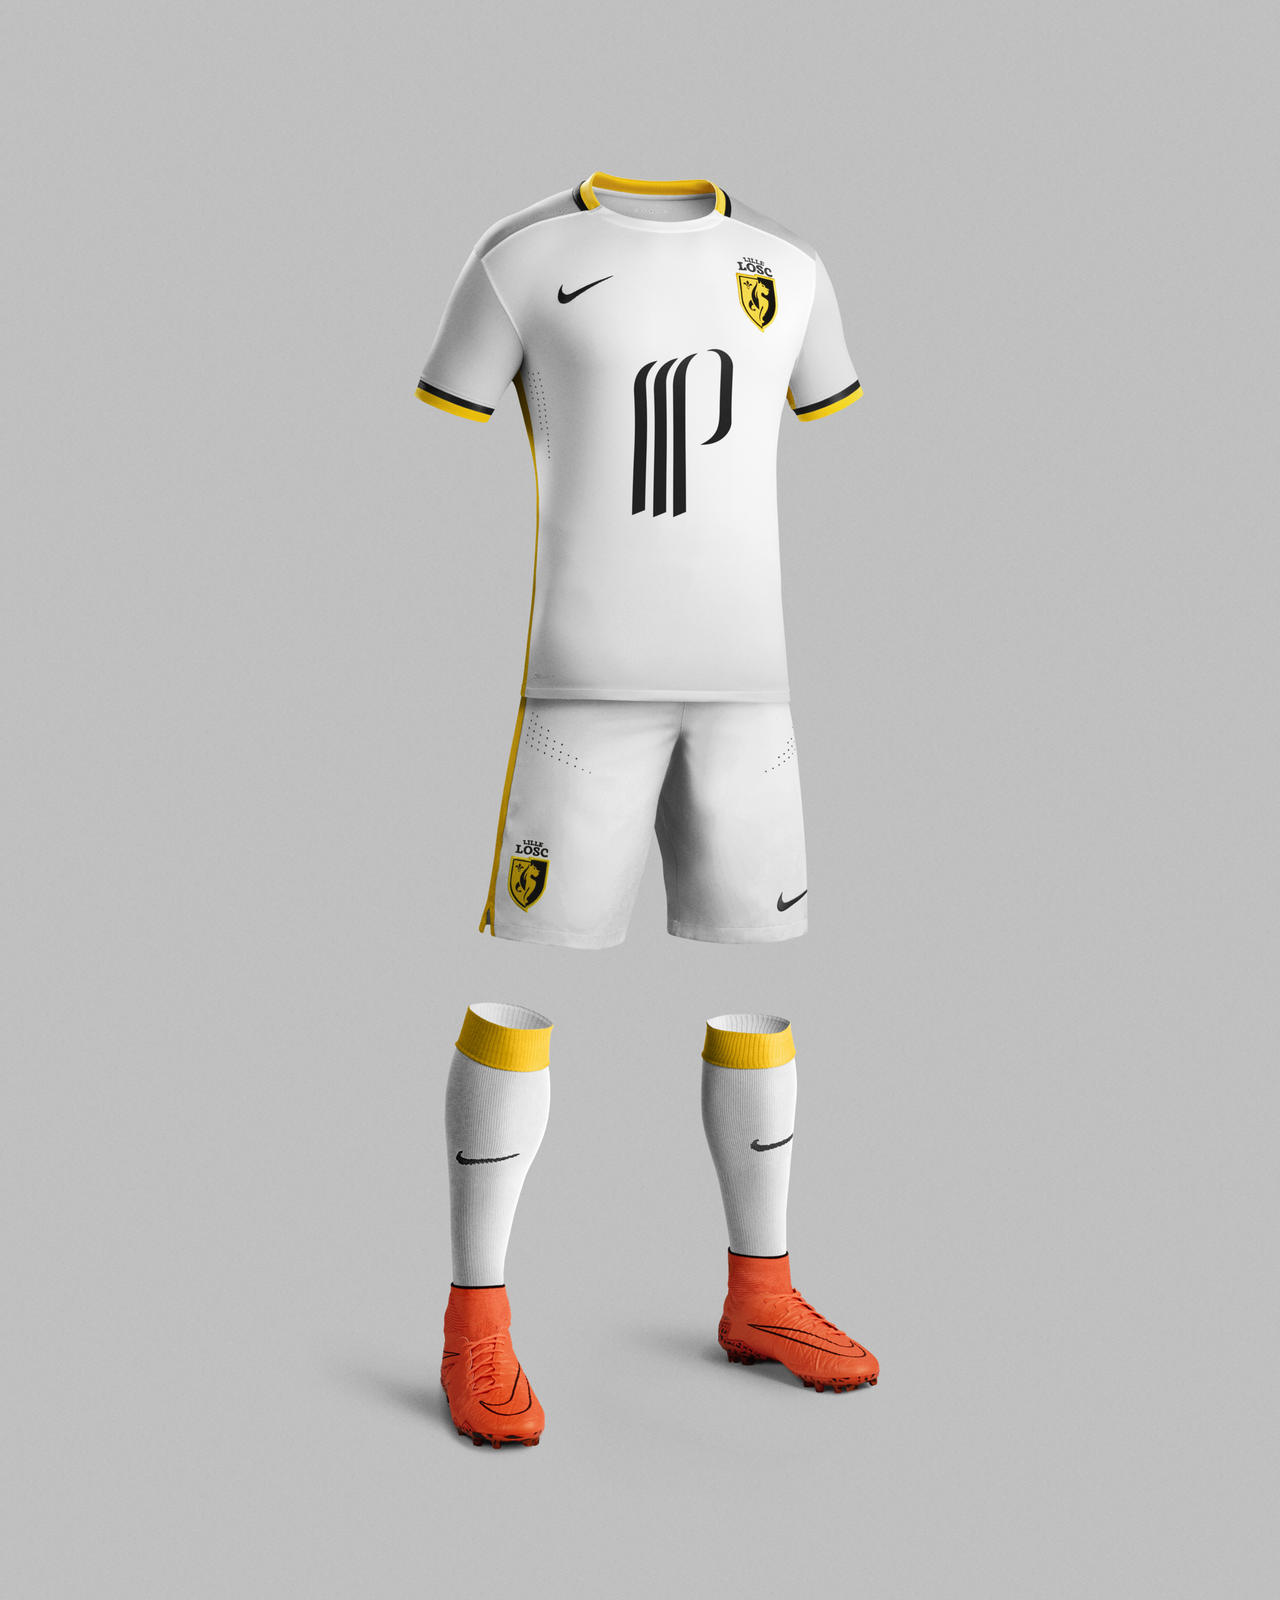 huge selection of 6134d 9dbf4 Traditional 2015-16 Away Kit for Lille OSC Inspired by Local ...